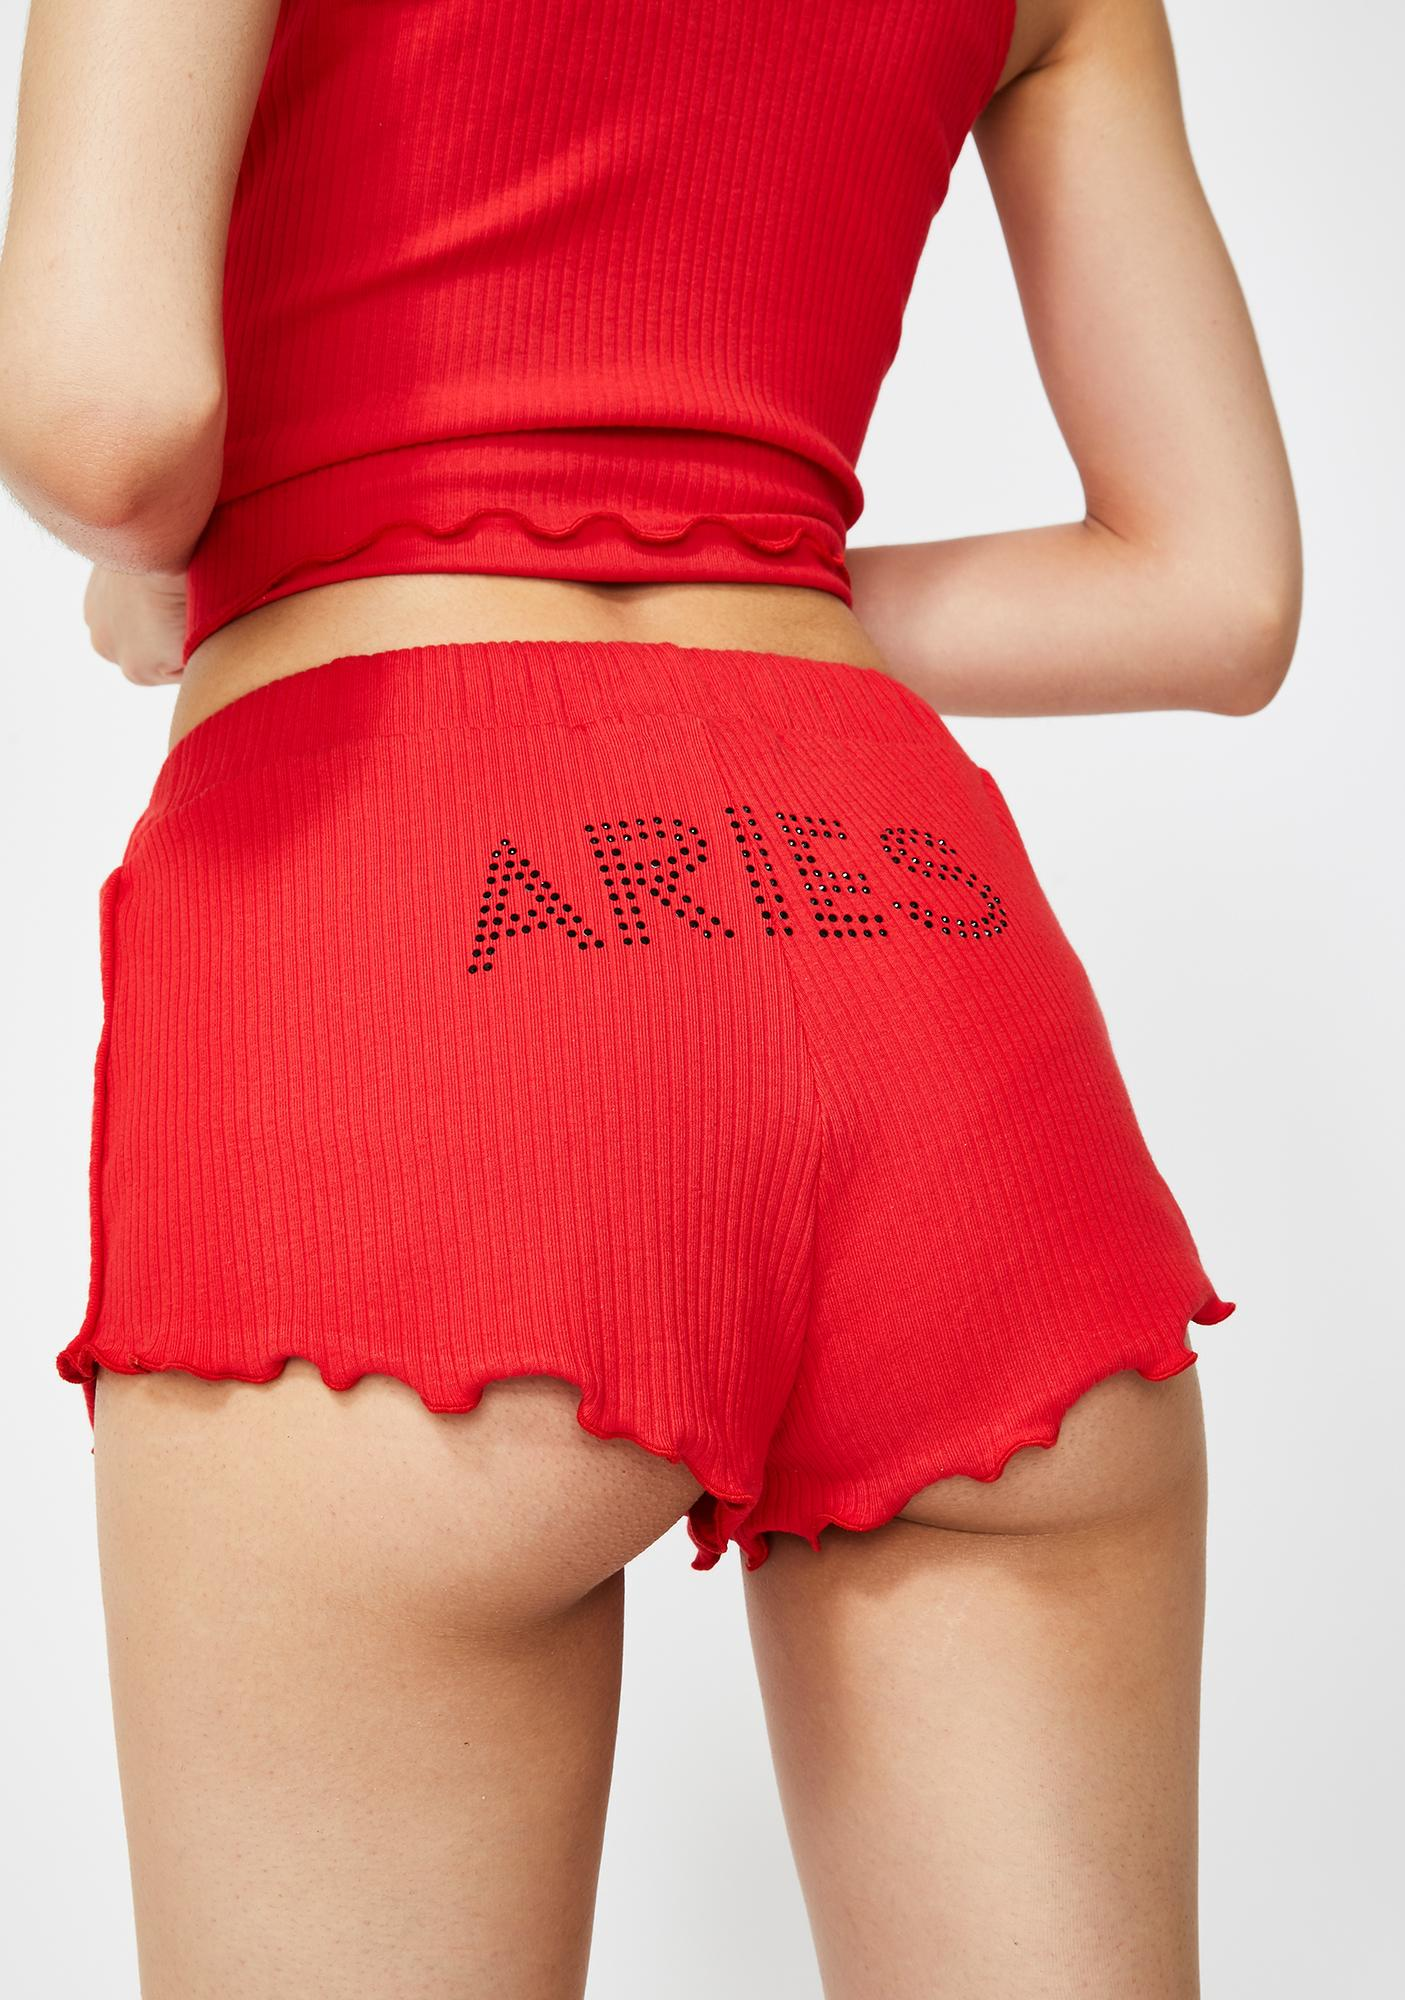 HOROSCOPEZ Aries AF Pajama Shorts